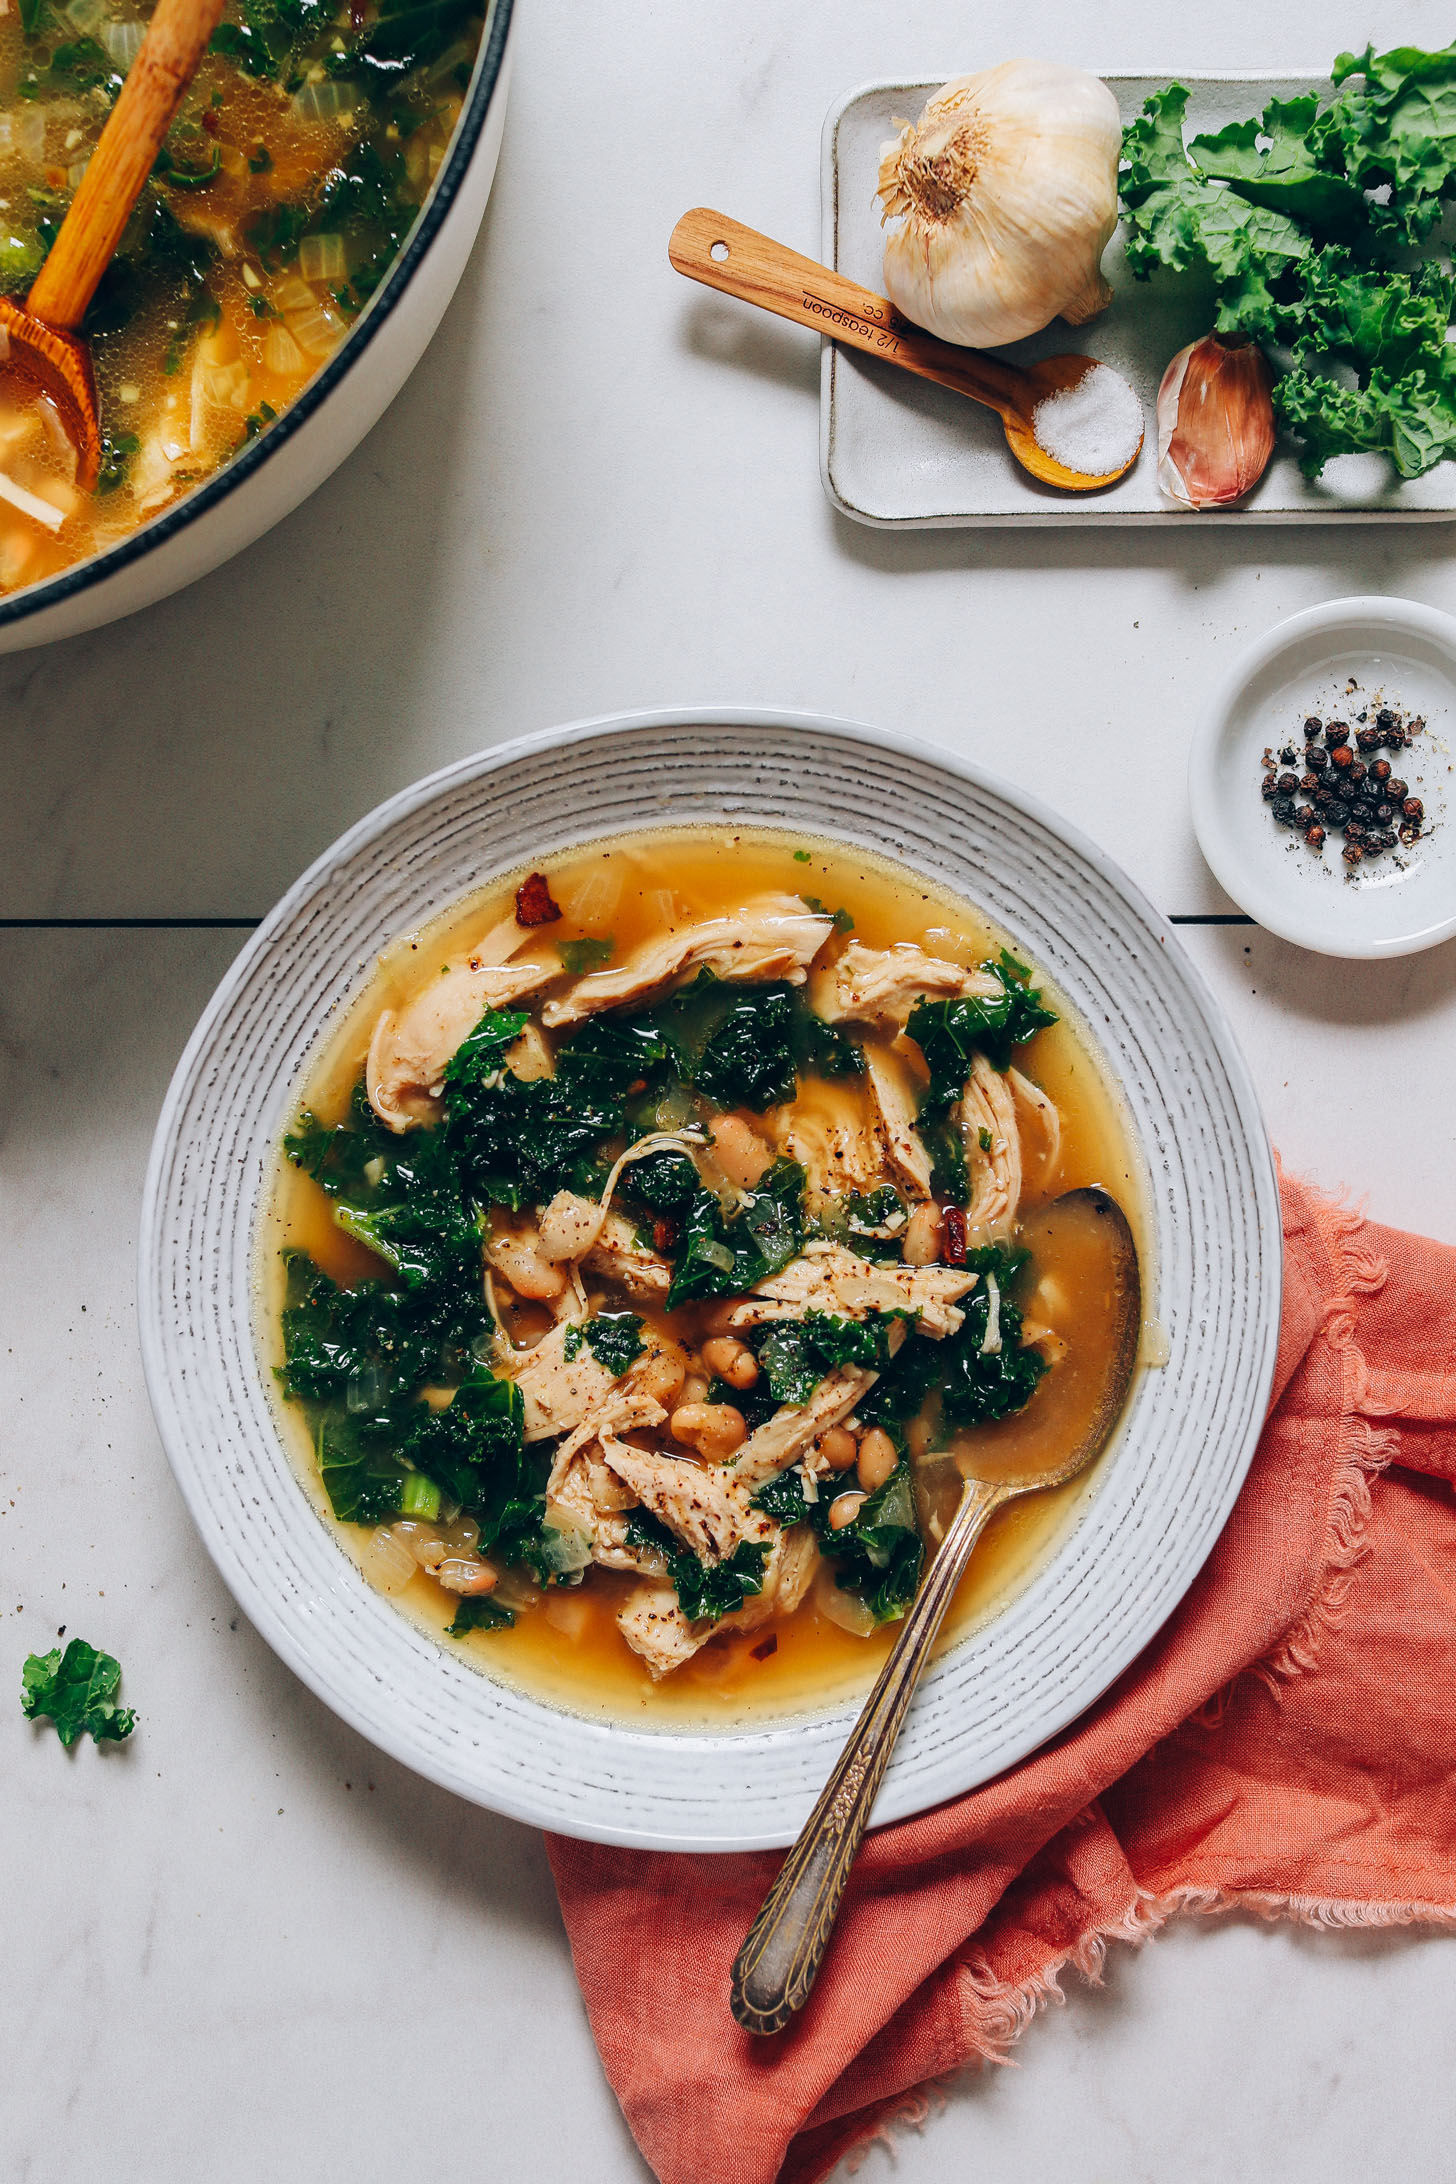 Bowl of grain-free Chicken Soup made with kale and white beans